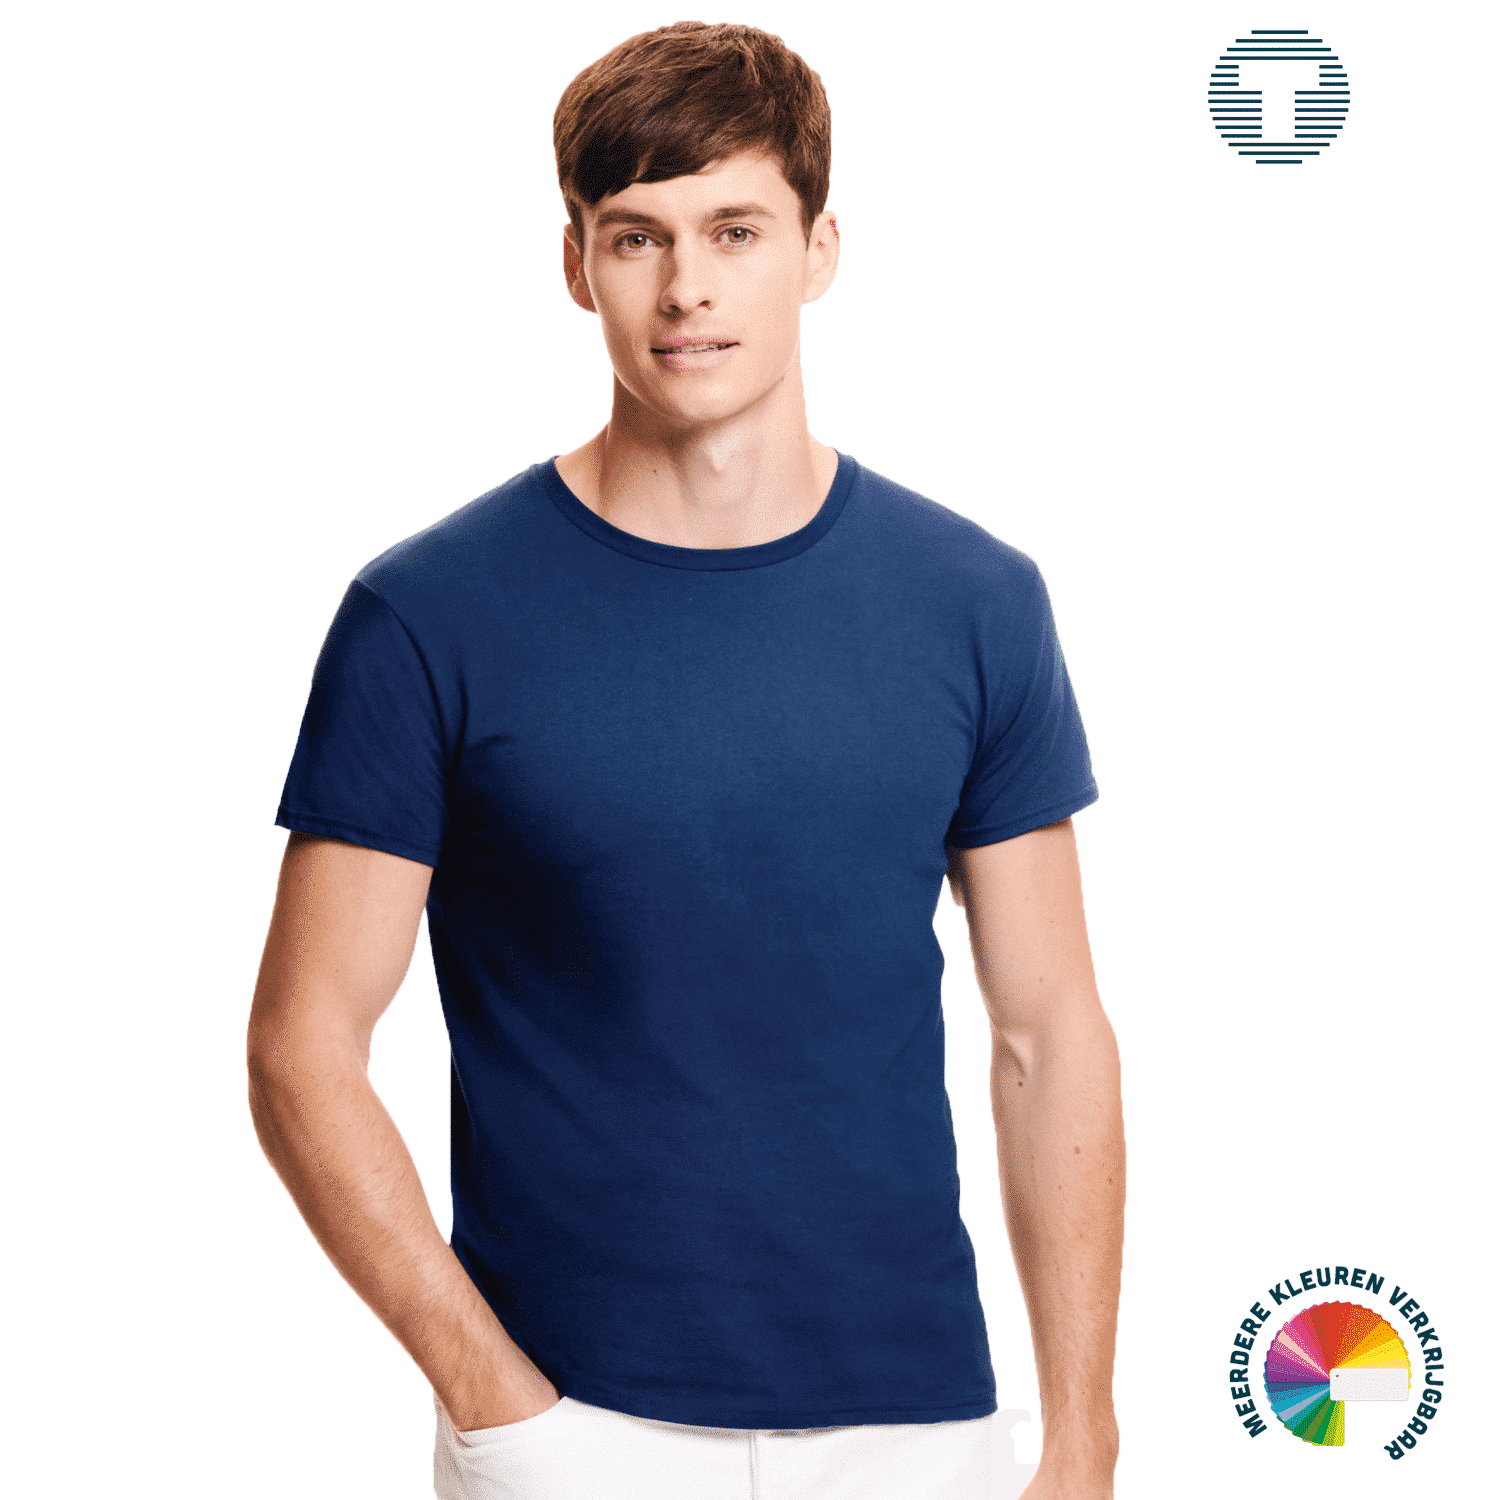 Premium t-shirt Fruit of the Loom ontwerpen en bedrukken